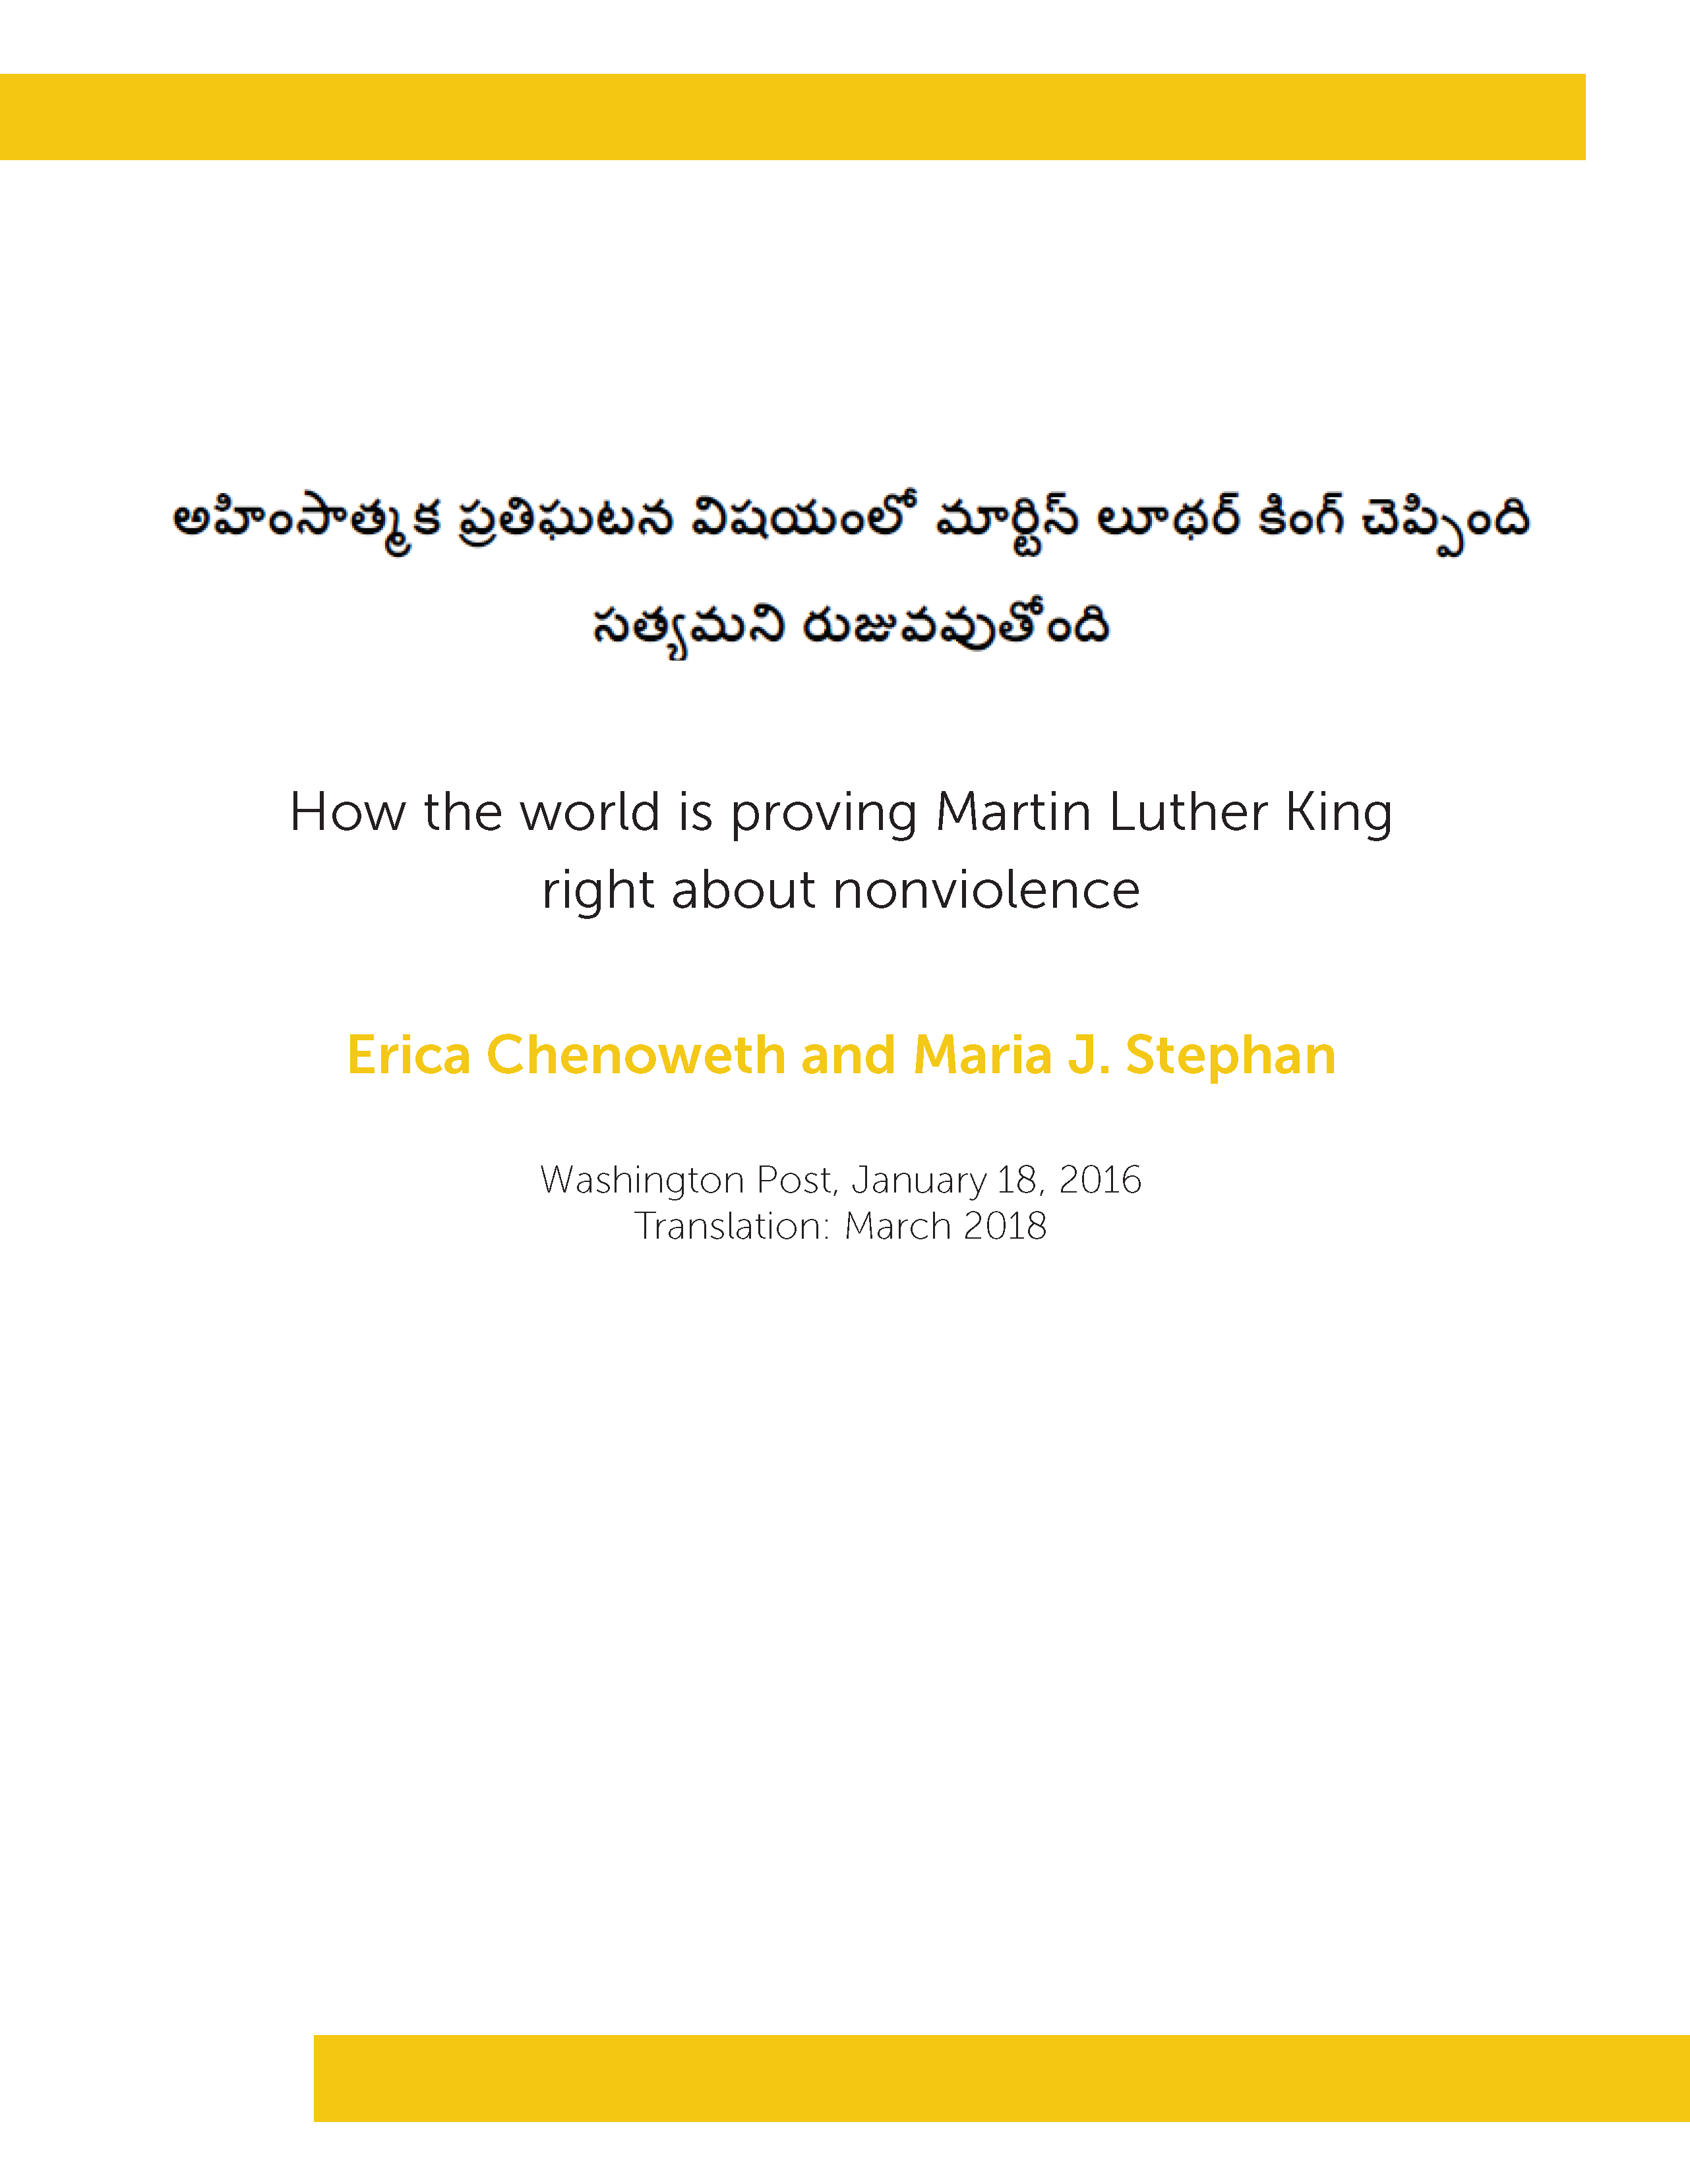 How the world is proving Martin Luther King right about nonviolence (Telugu)